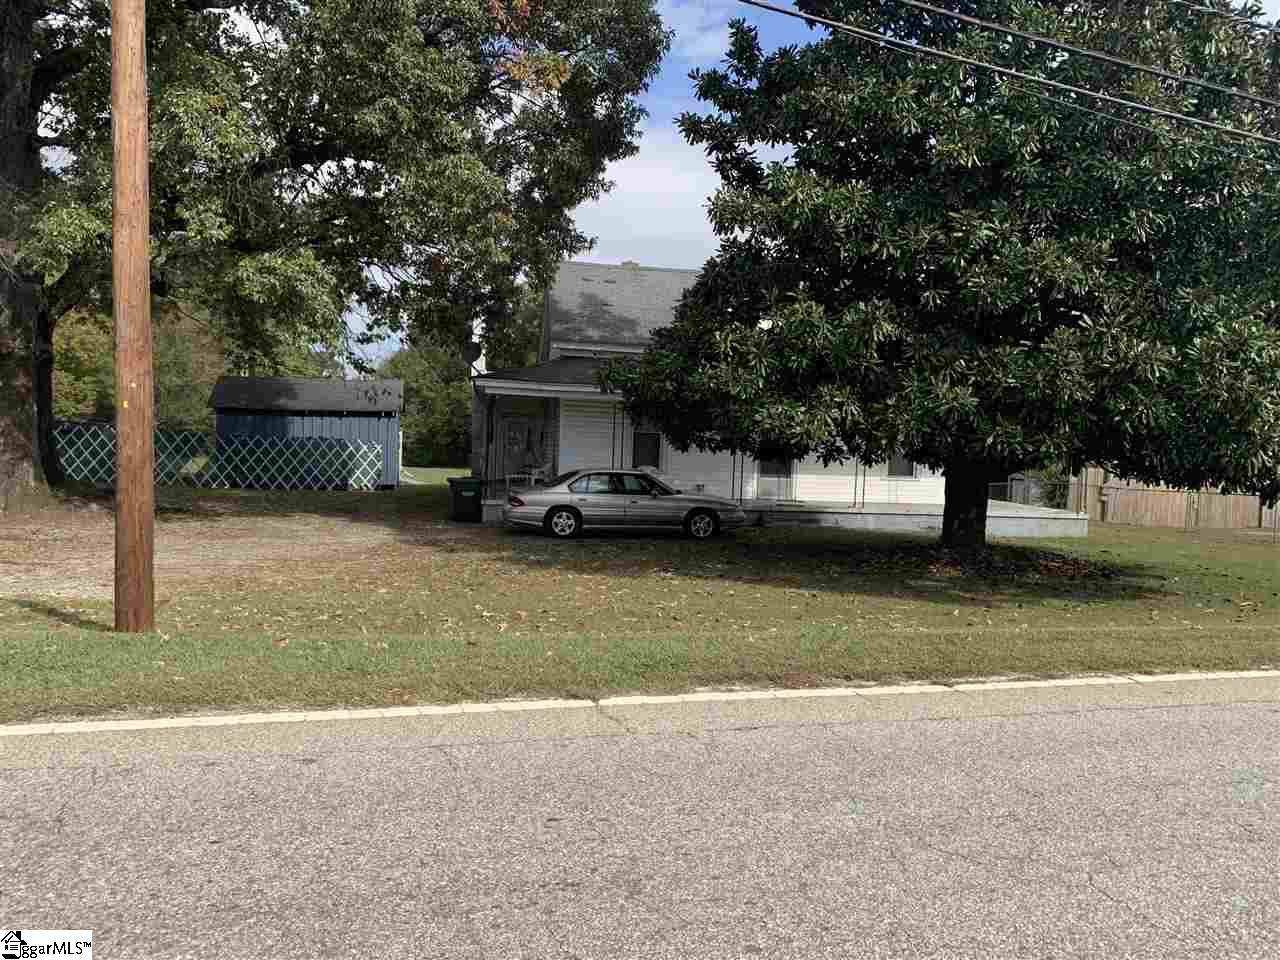 715 East Poinsett Street - Photo 1